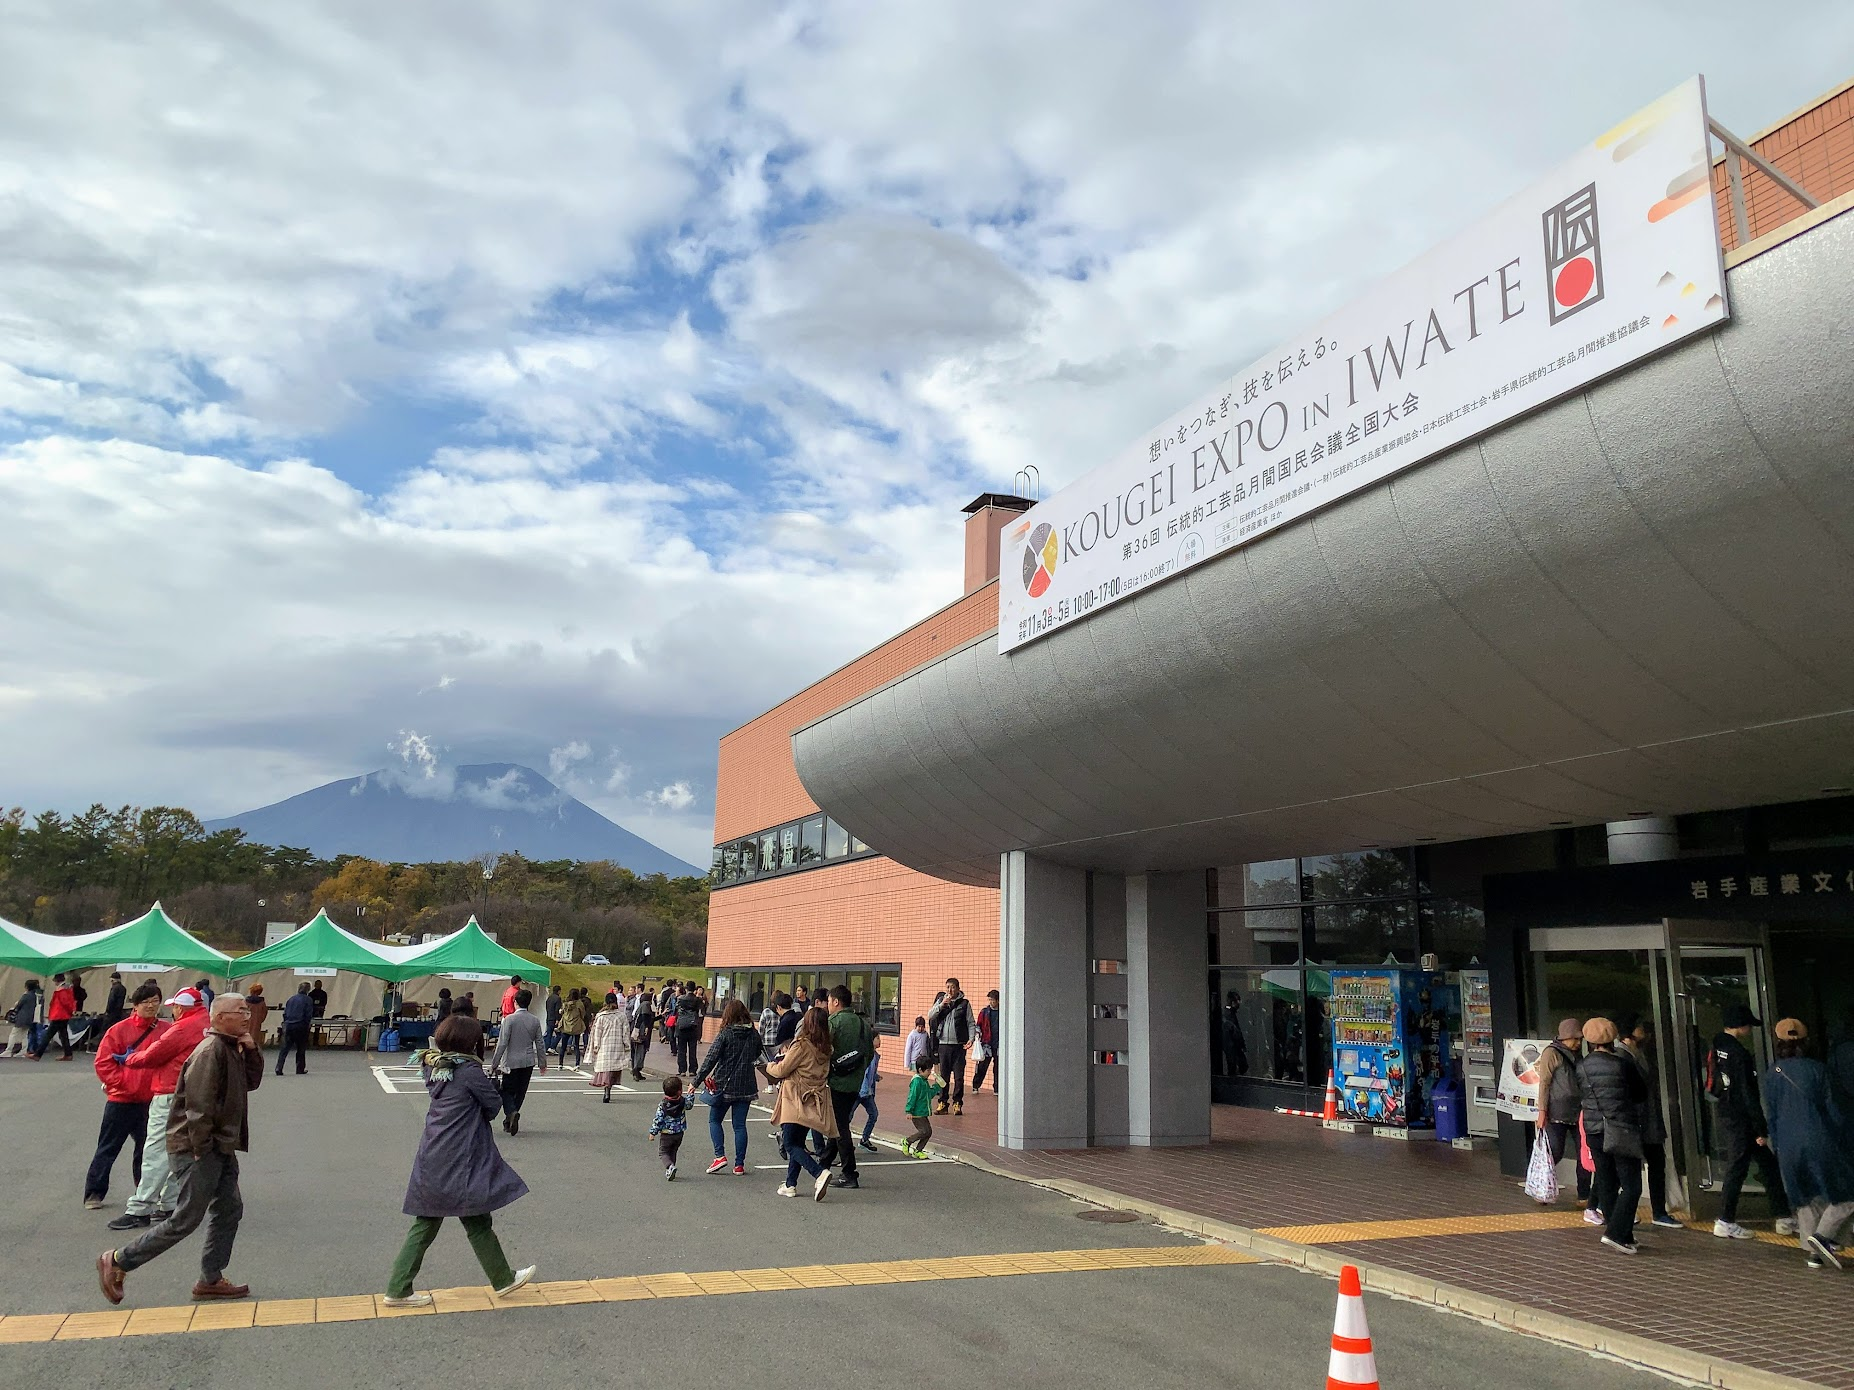 KOUGEI-EXPO IN IWATE 開幕。(後編)